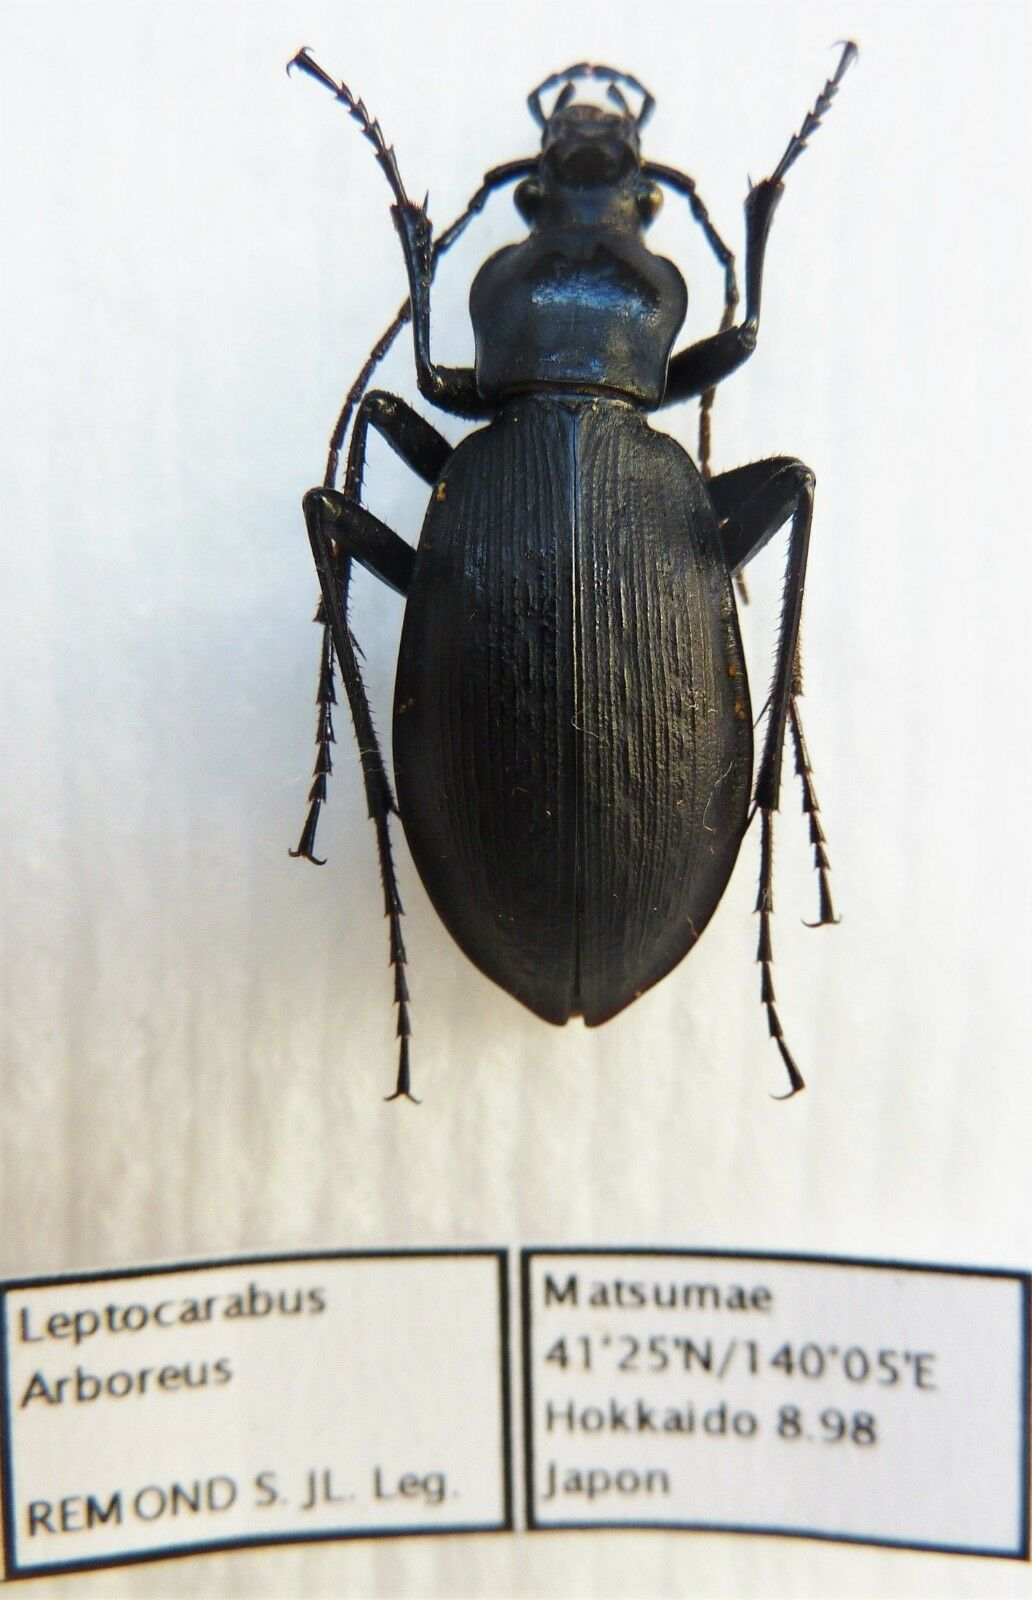 Carabus leptocarabus arboreus (female A1) from JAPAN (Carabidae)